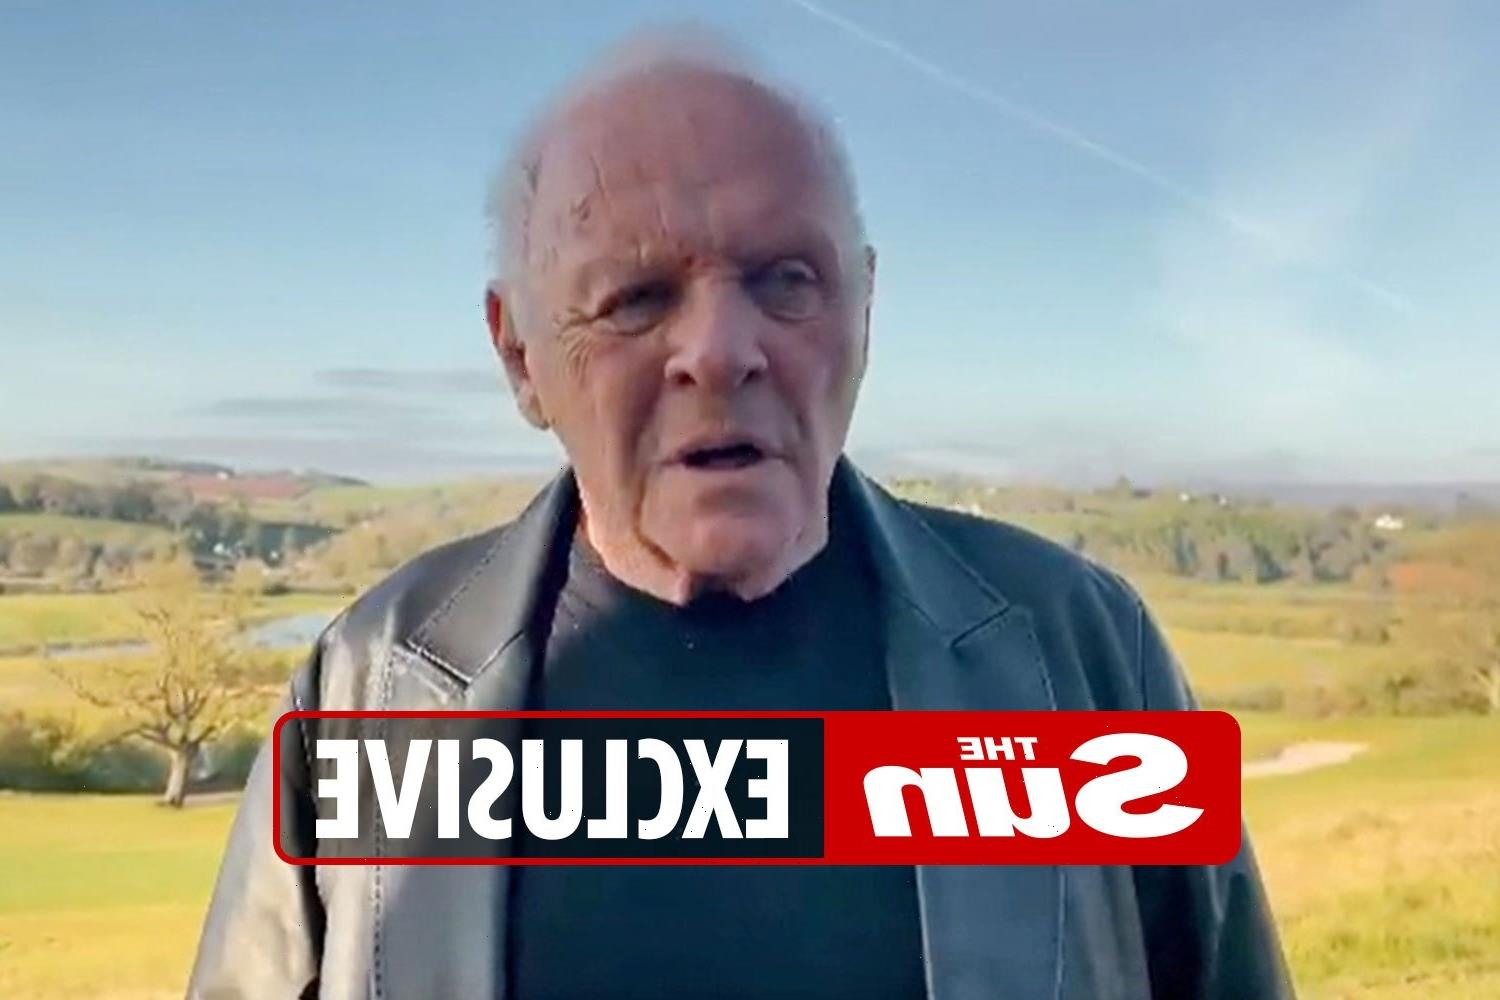 Sir Anthony Hopkins swapped trip to the Oscars in LA for £1.60 steak bake from Greggs